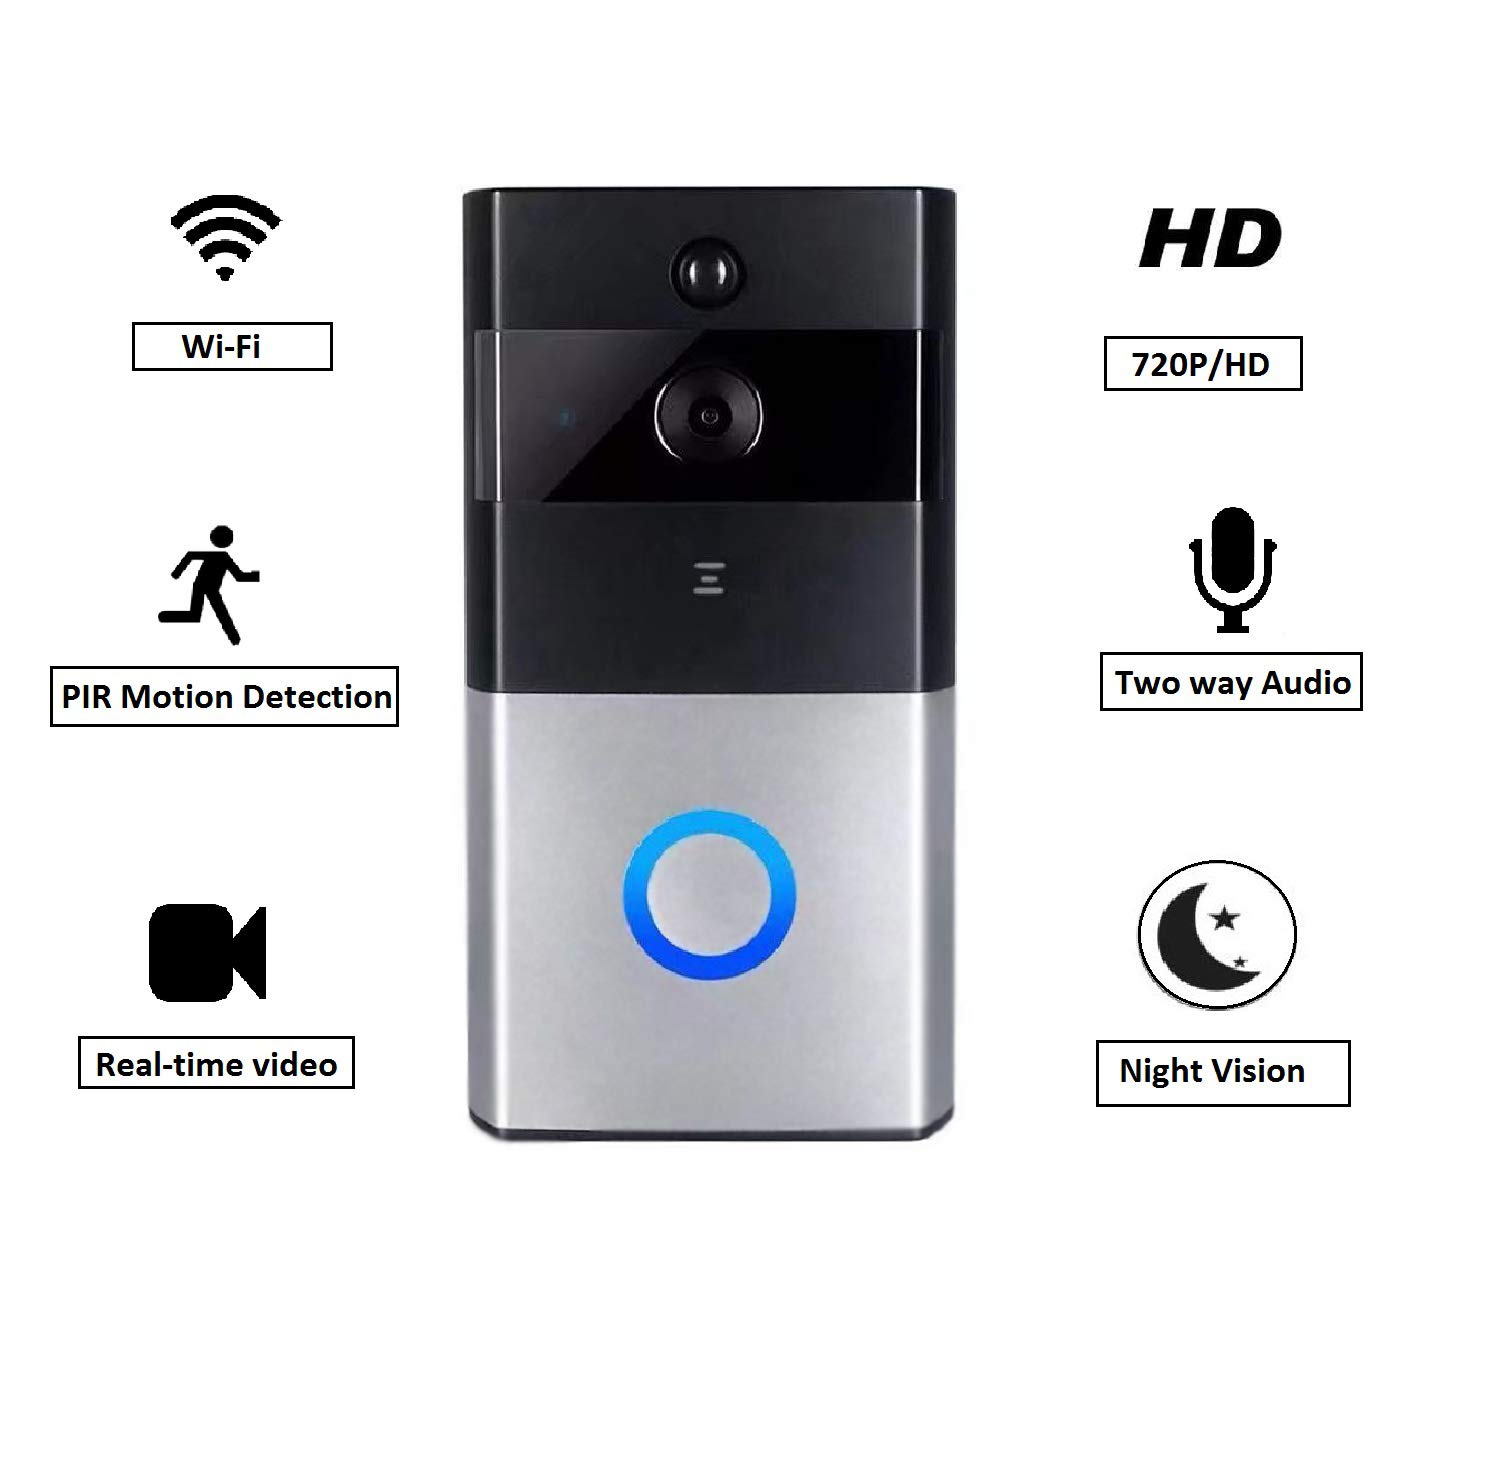 EXOX Video Doorbell WiFi Smart Doorbell 720P HD Wireless Doorbell, Real-Time Security Camera Doorbell,PIR Motion Detection and App Remote Control for IOS and Android